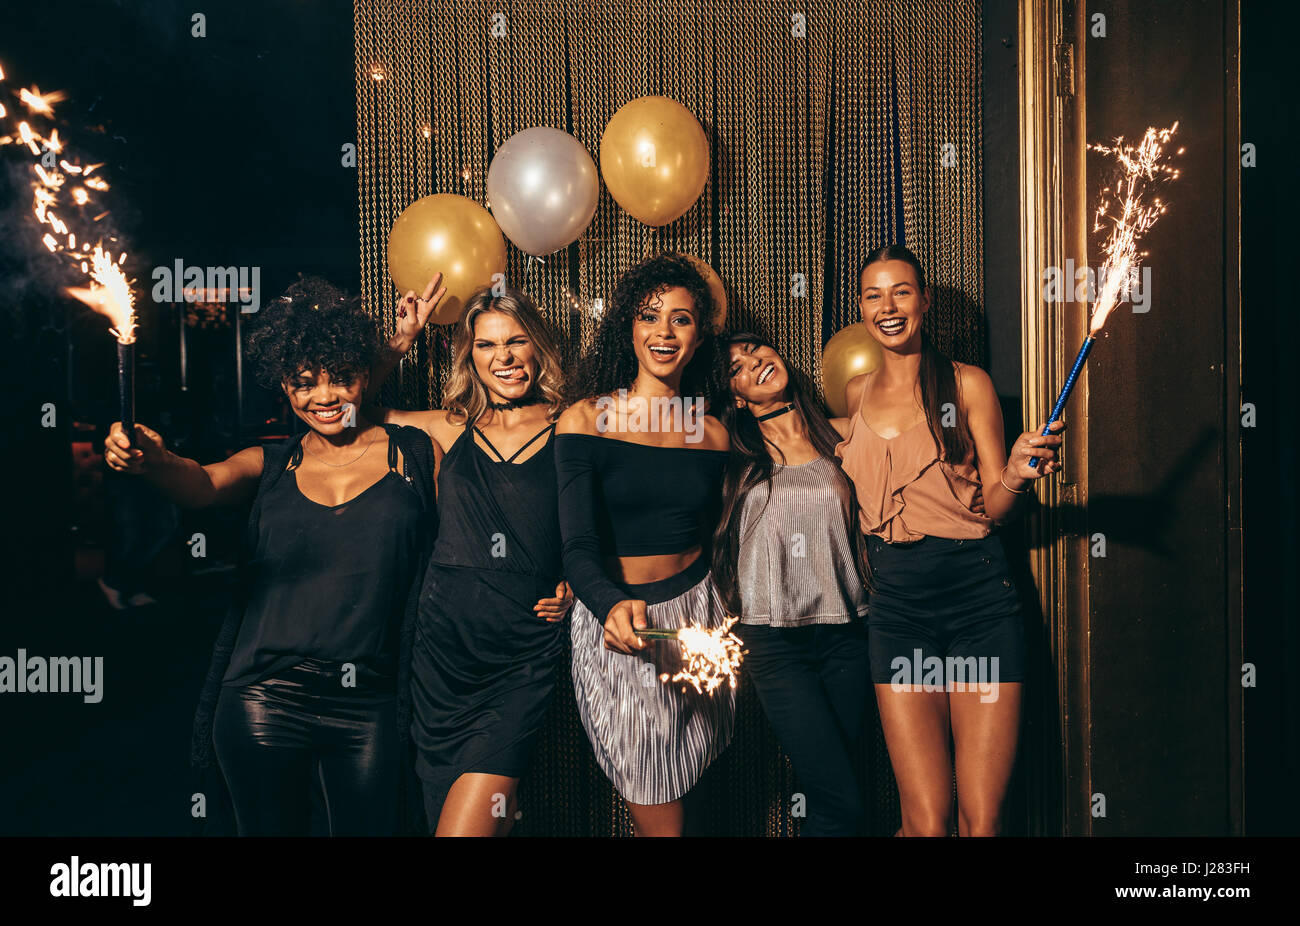 Shot of group of girls celebrating new years eve at the nightclub. Group of female friends partying in pub with - Stock Image